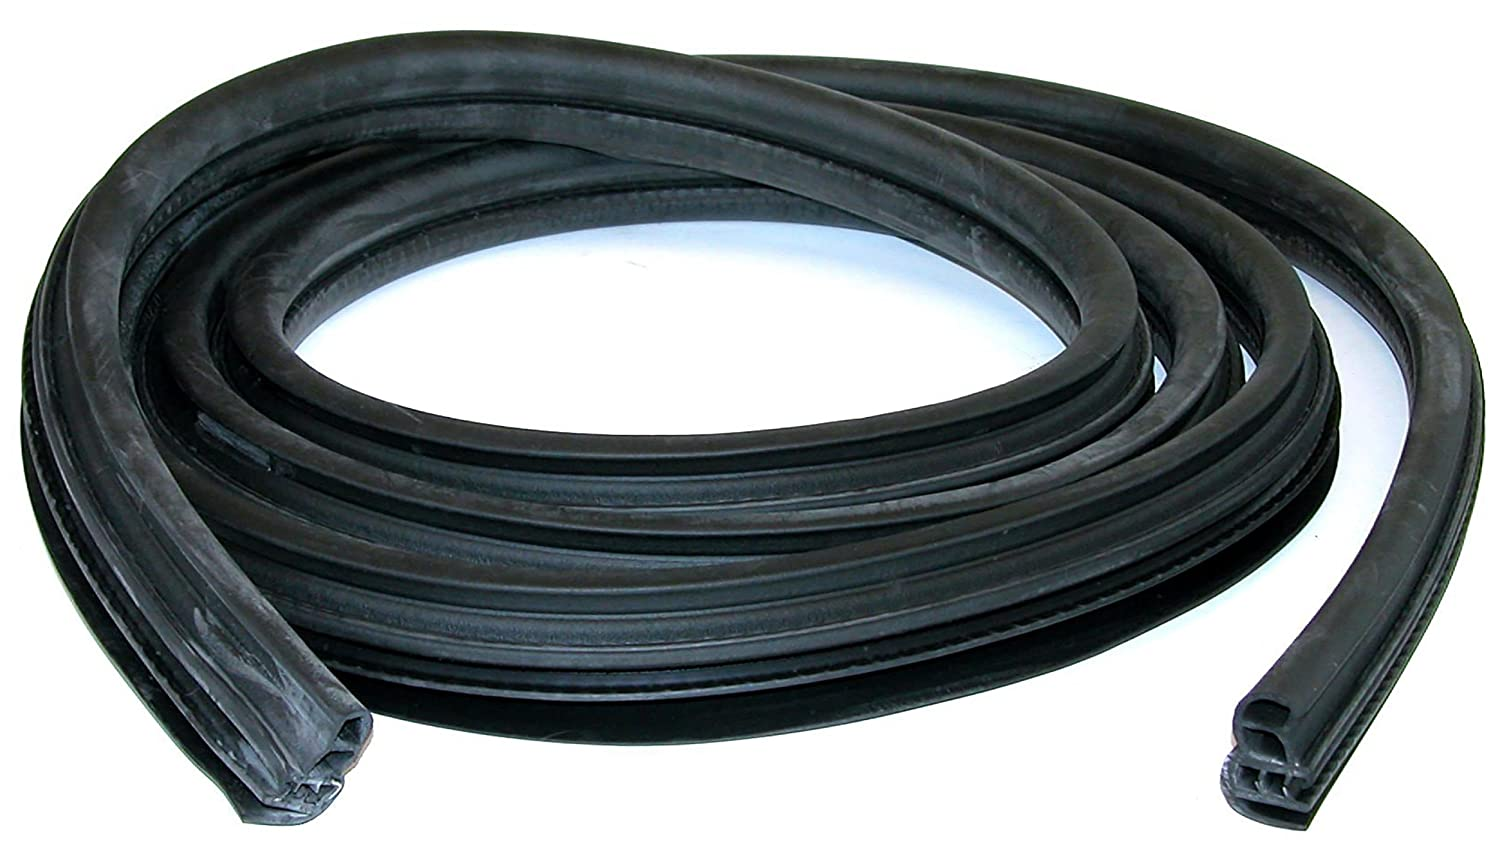 APDTY 140005 Body Mounted Rubber Door Weatherstrip Seal Front Left or Right 2003-2014 Ford F250 F350 F450 F550 Extended Cab aka Super Cab (Does Not Fit Regular or Crew Cab; Replaces 3C3Z-2820708-AB)